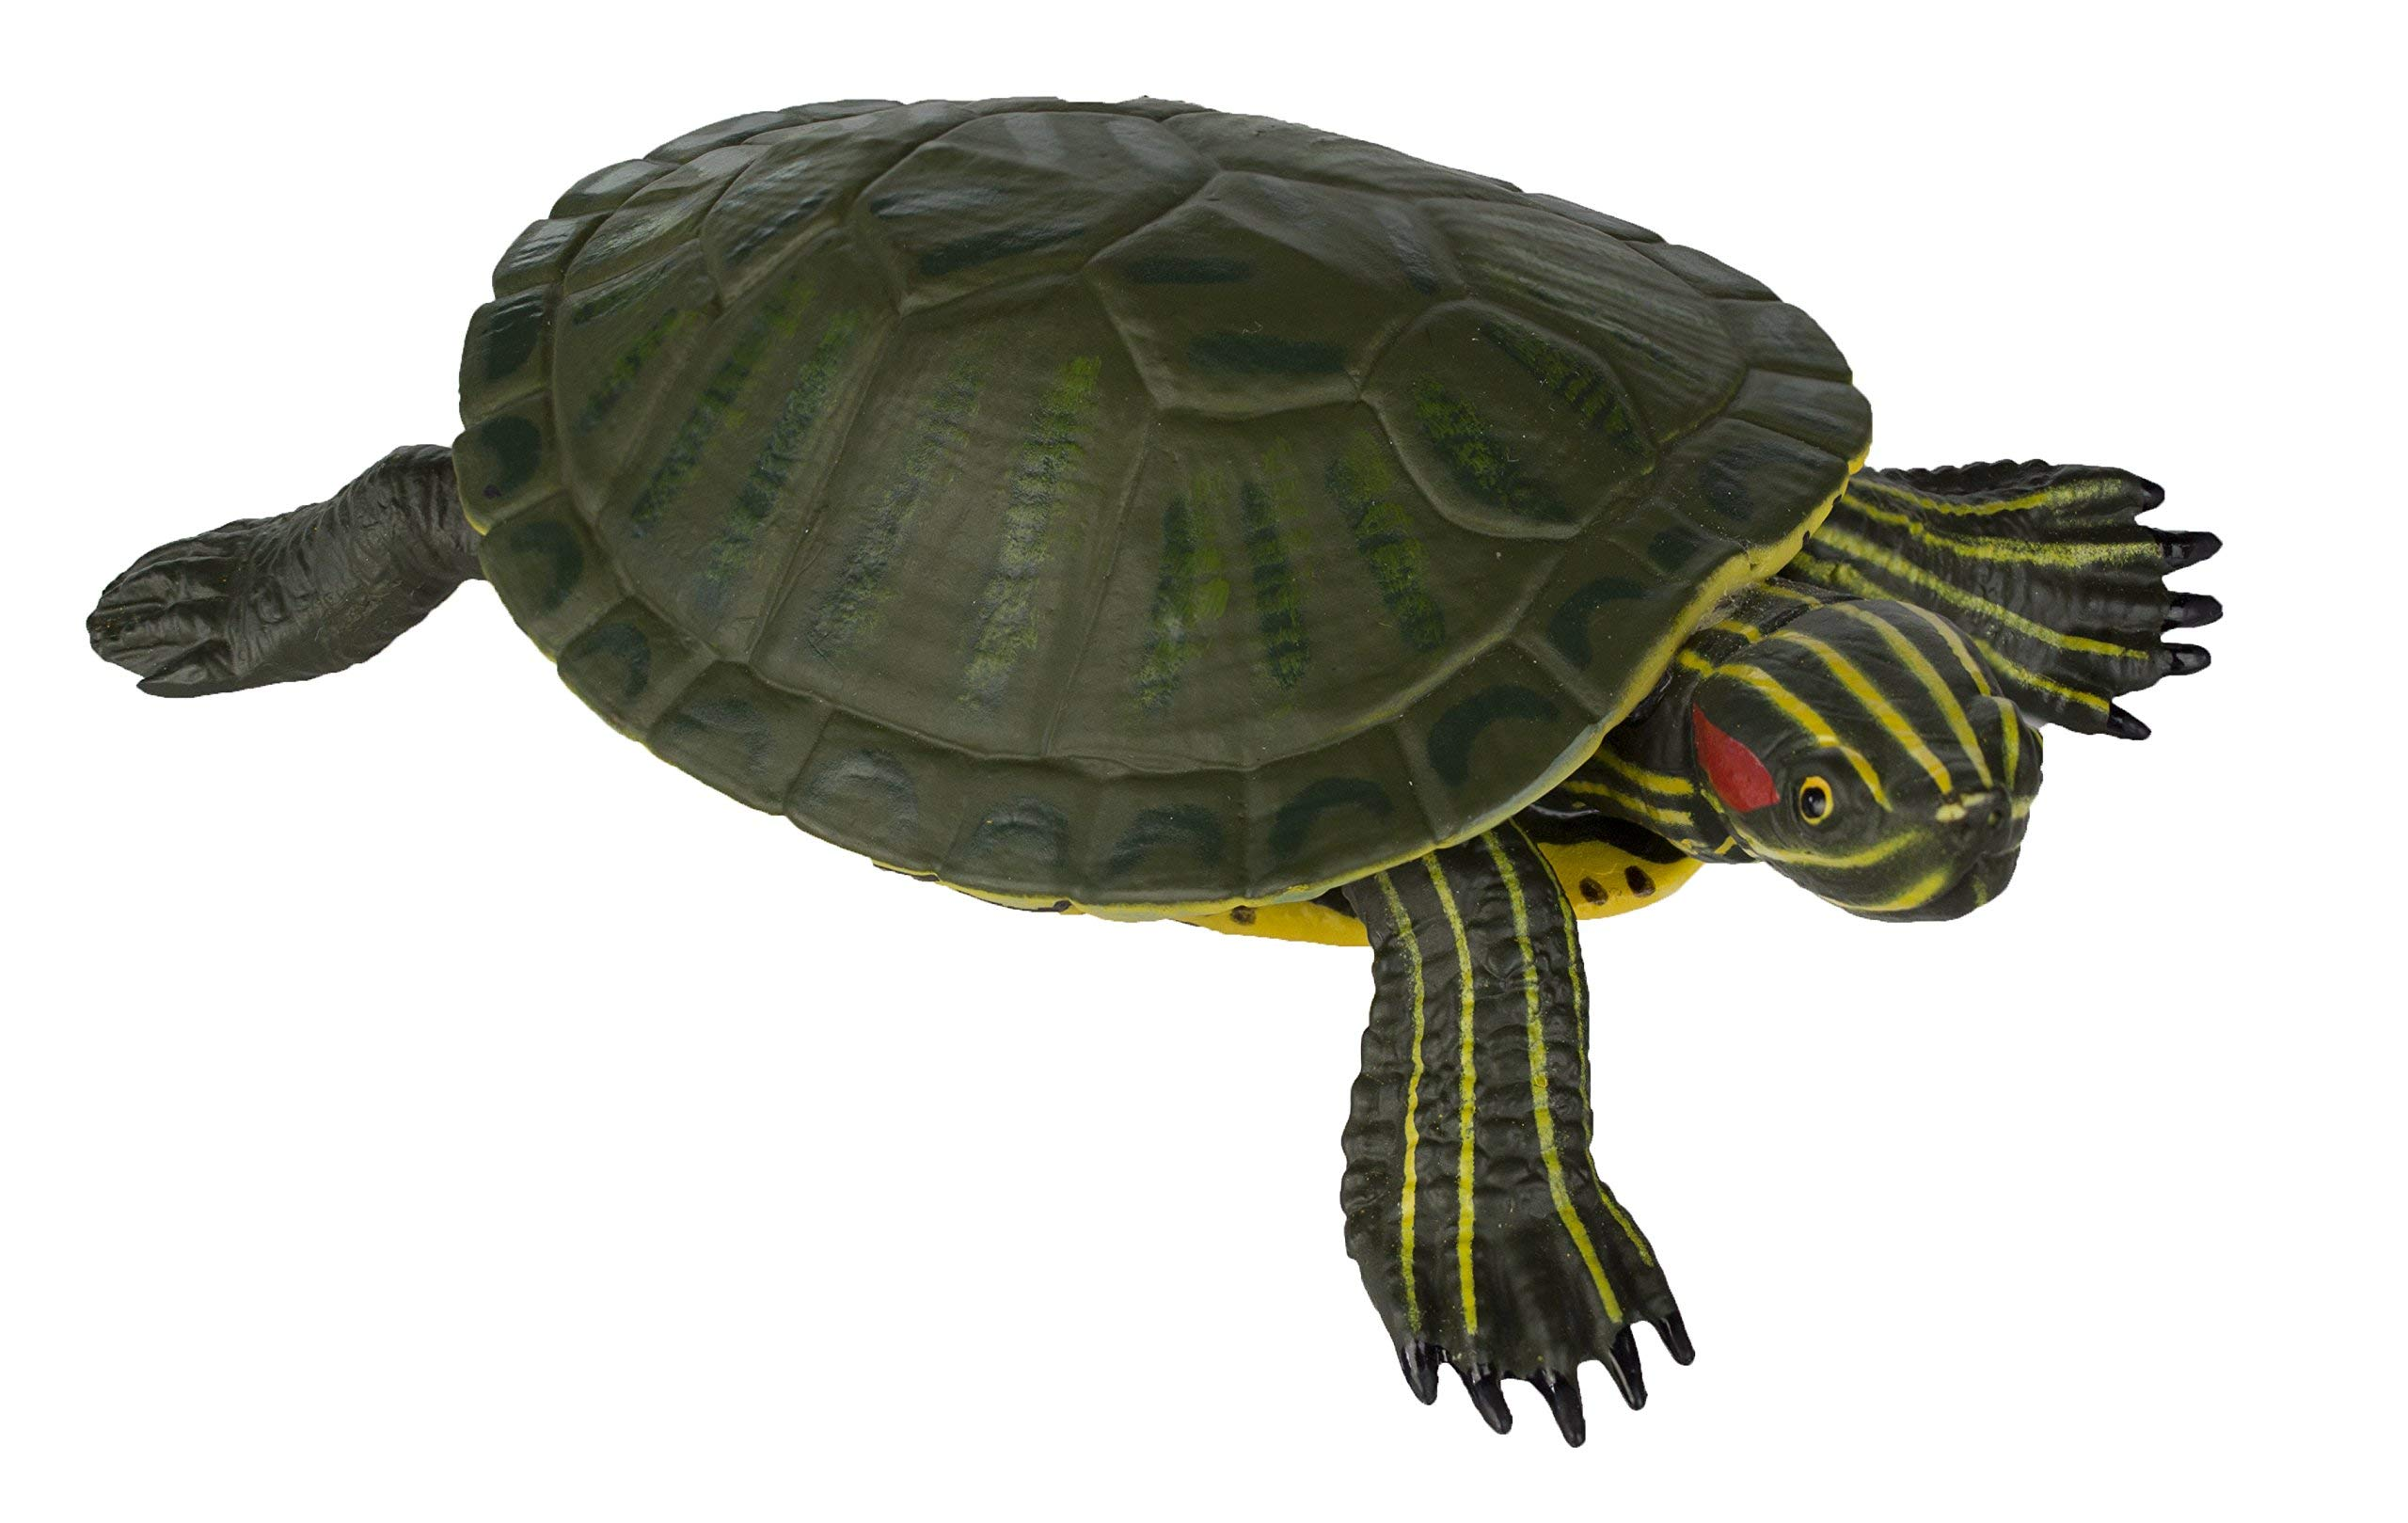 Buy Safari Ltd Red Eared Slider Turtle Online At Low Prices In India Amazon In